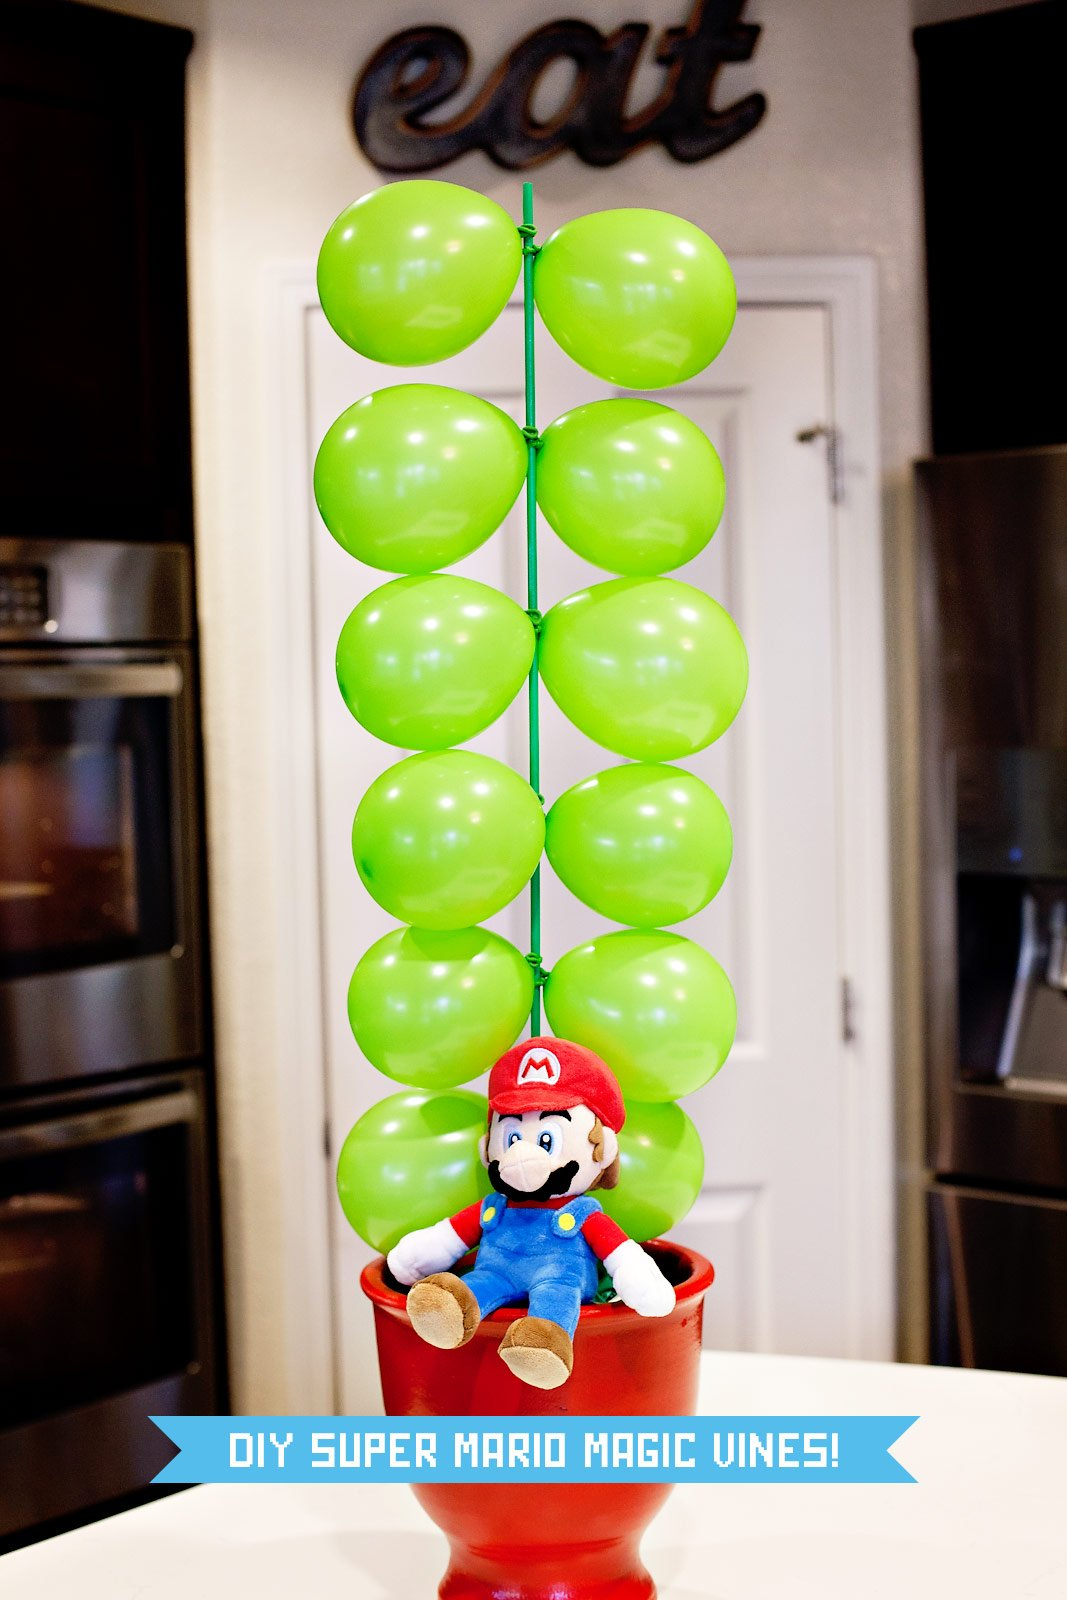 DIY Mario Magic Vines